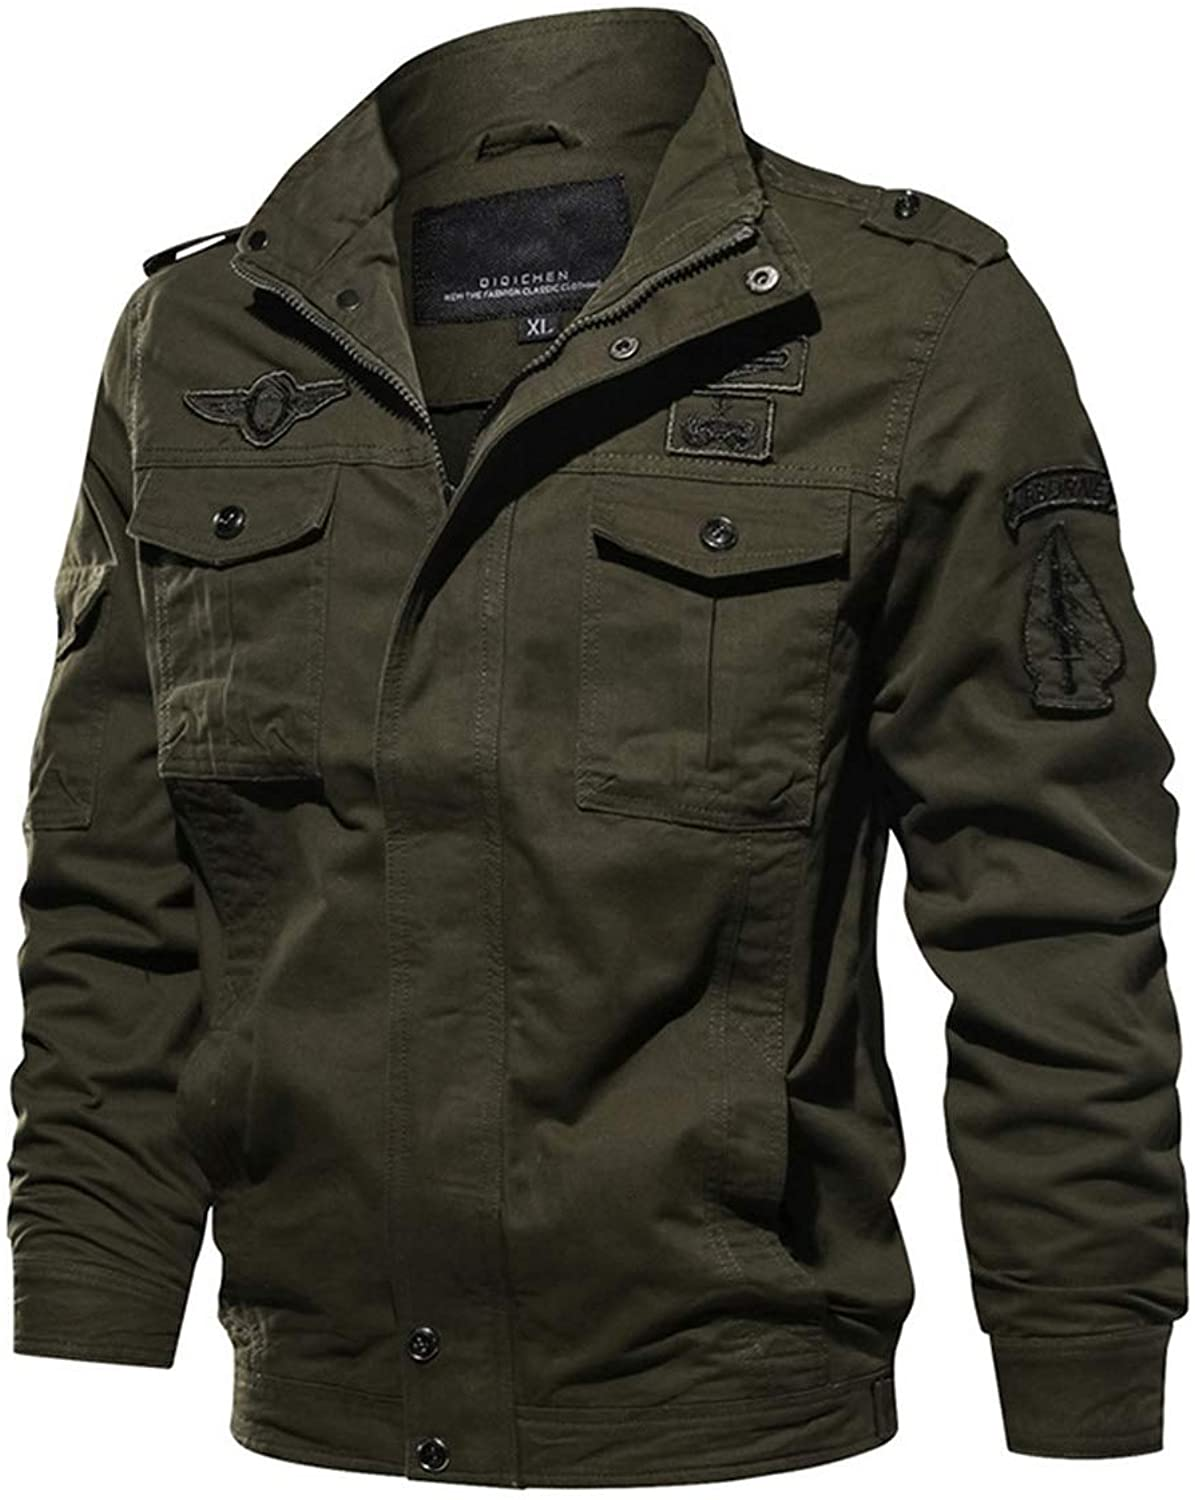 Men Tactical Military Autumn Air Force Style Pilot Bomber Jacket Winter Casual Embroidery Cotton Army Coat